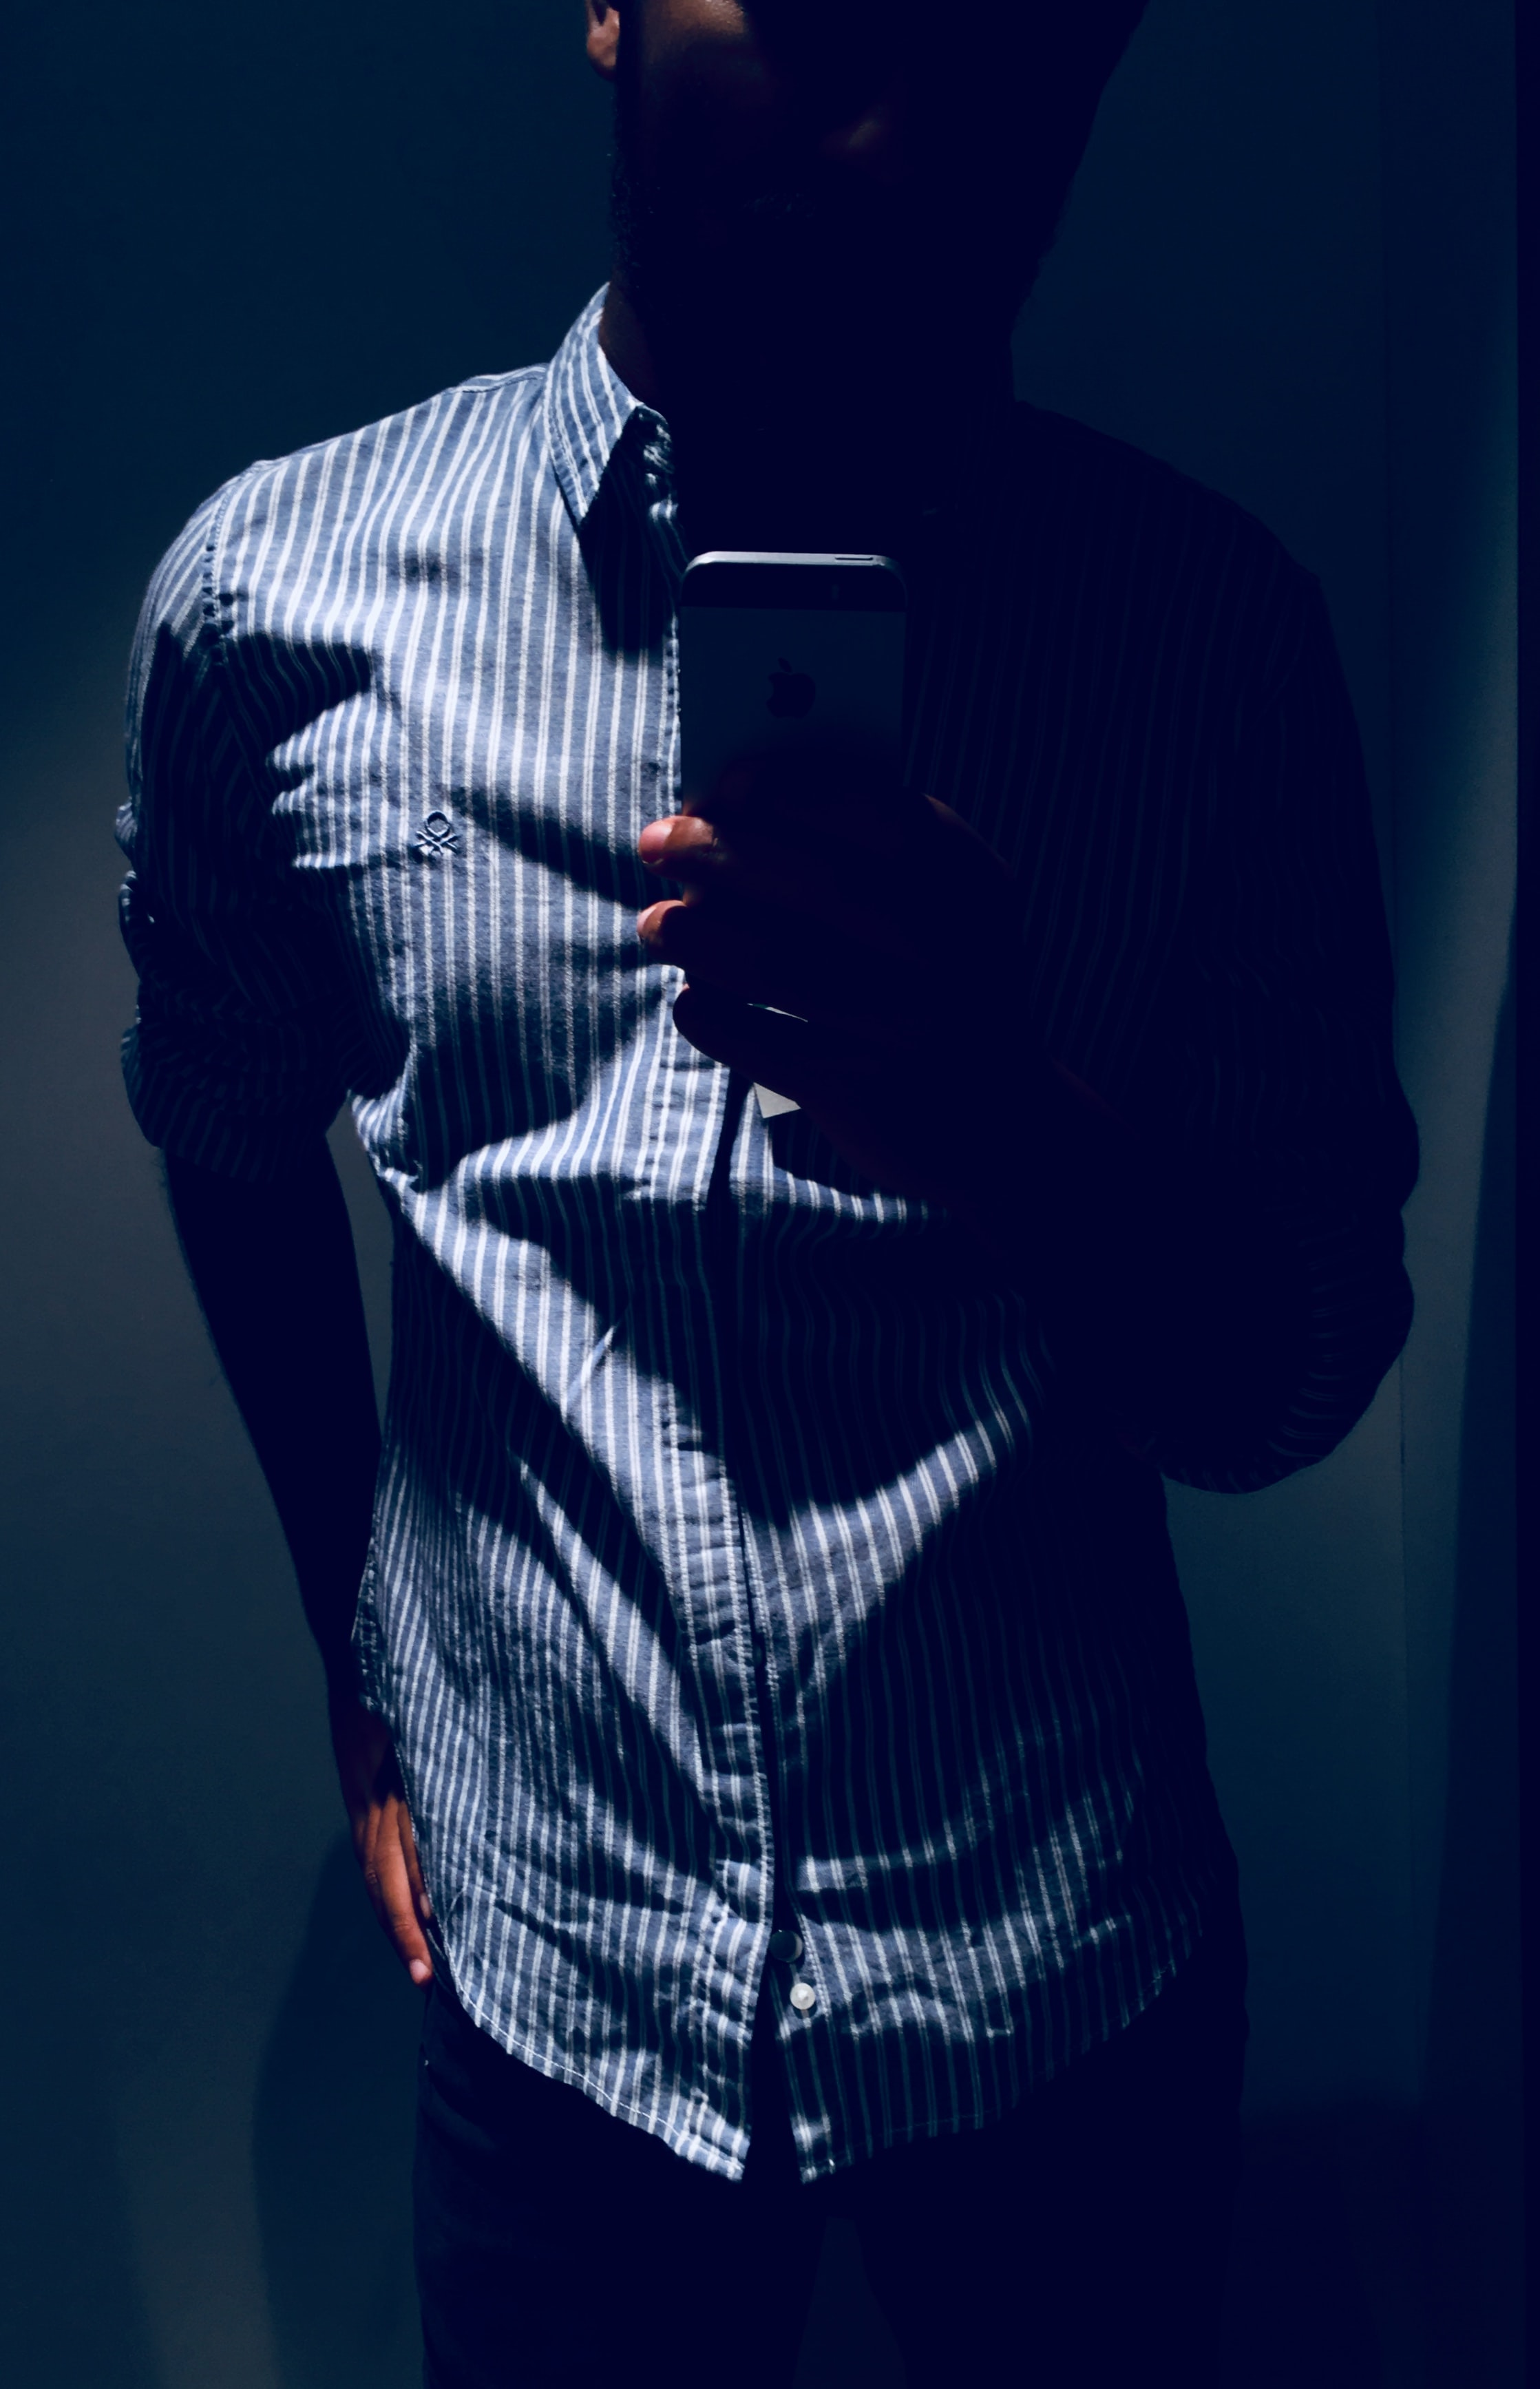 man wearing white and gray striped dress shirt